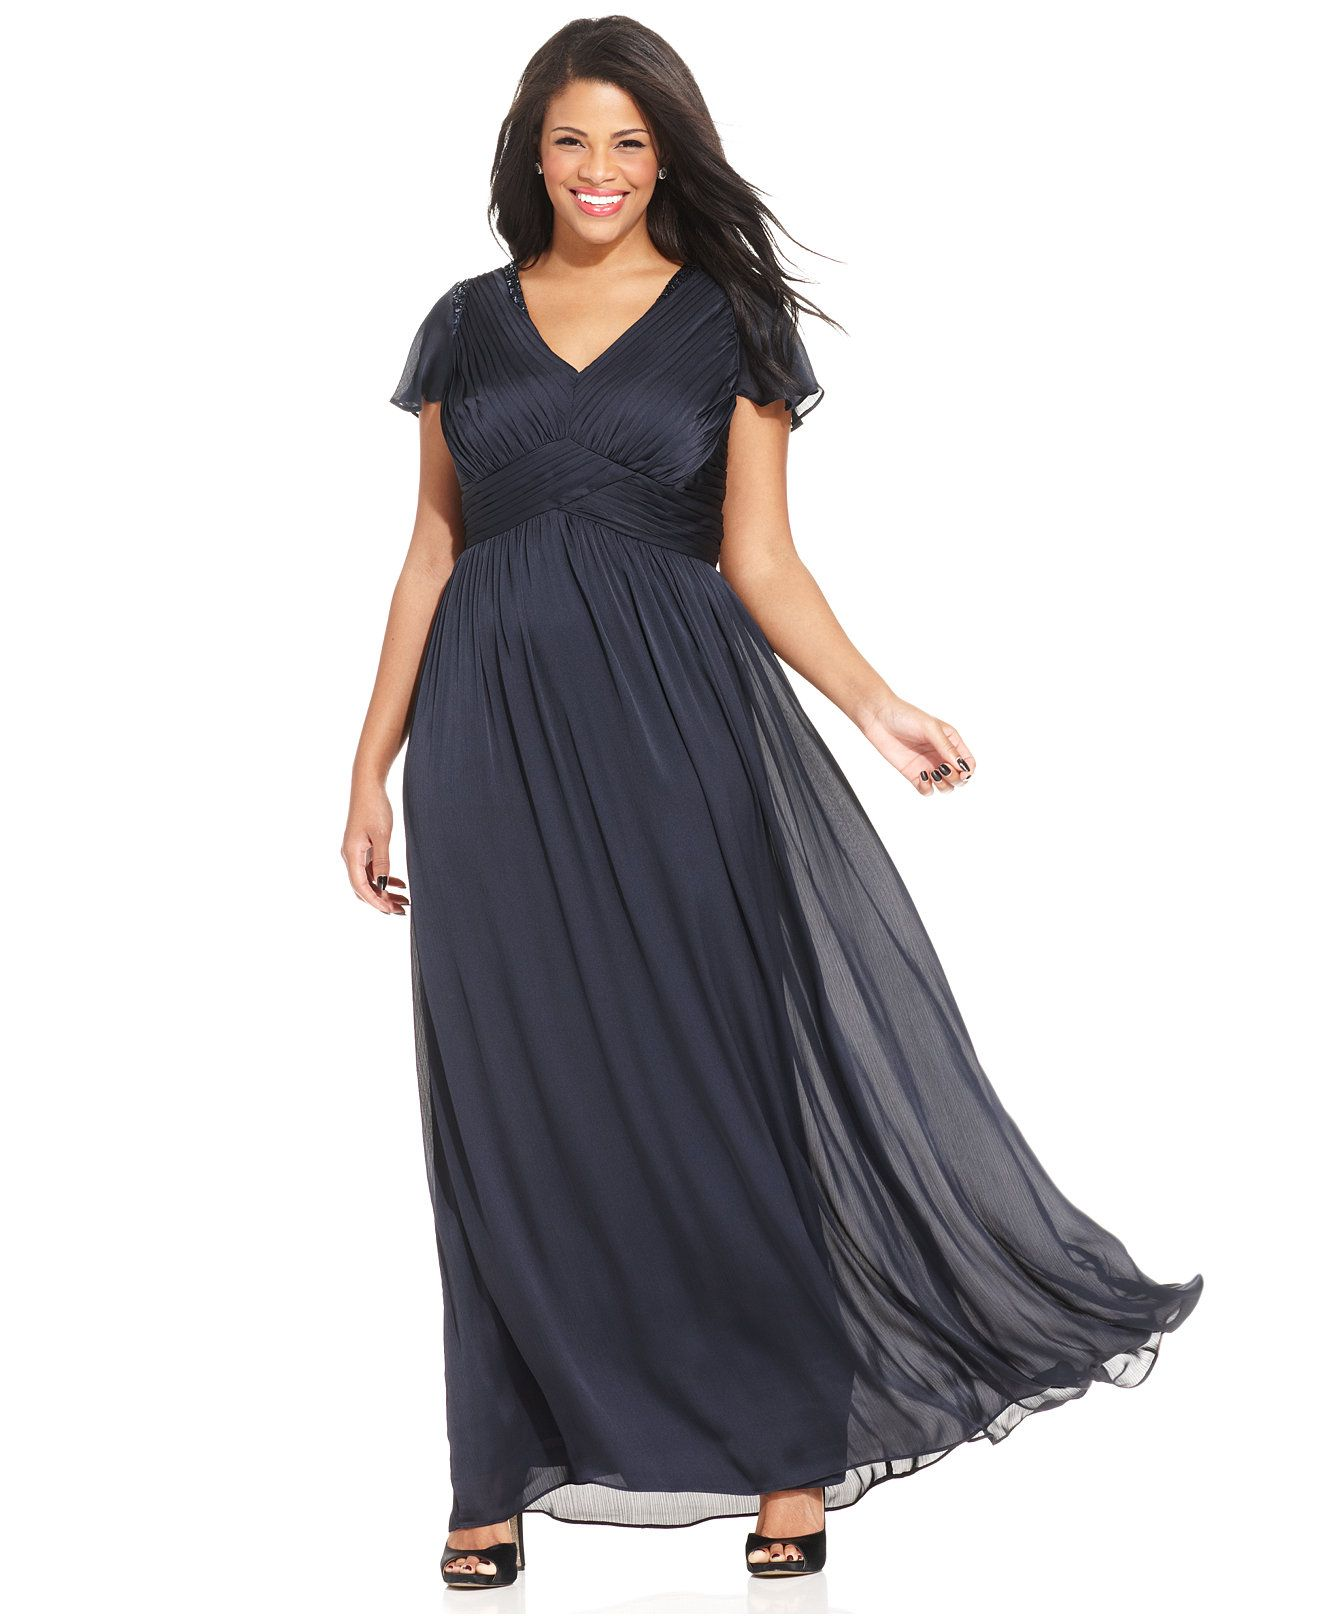 5d1c68f4d2f Adrianna Papell Plus Size Flutter-Sleeve Pleated Gown - Dresses - Plus Sizes  - Macy's